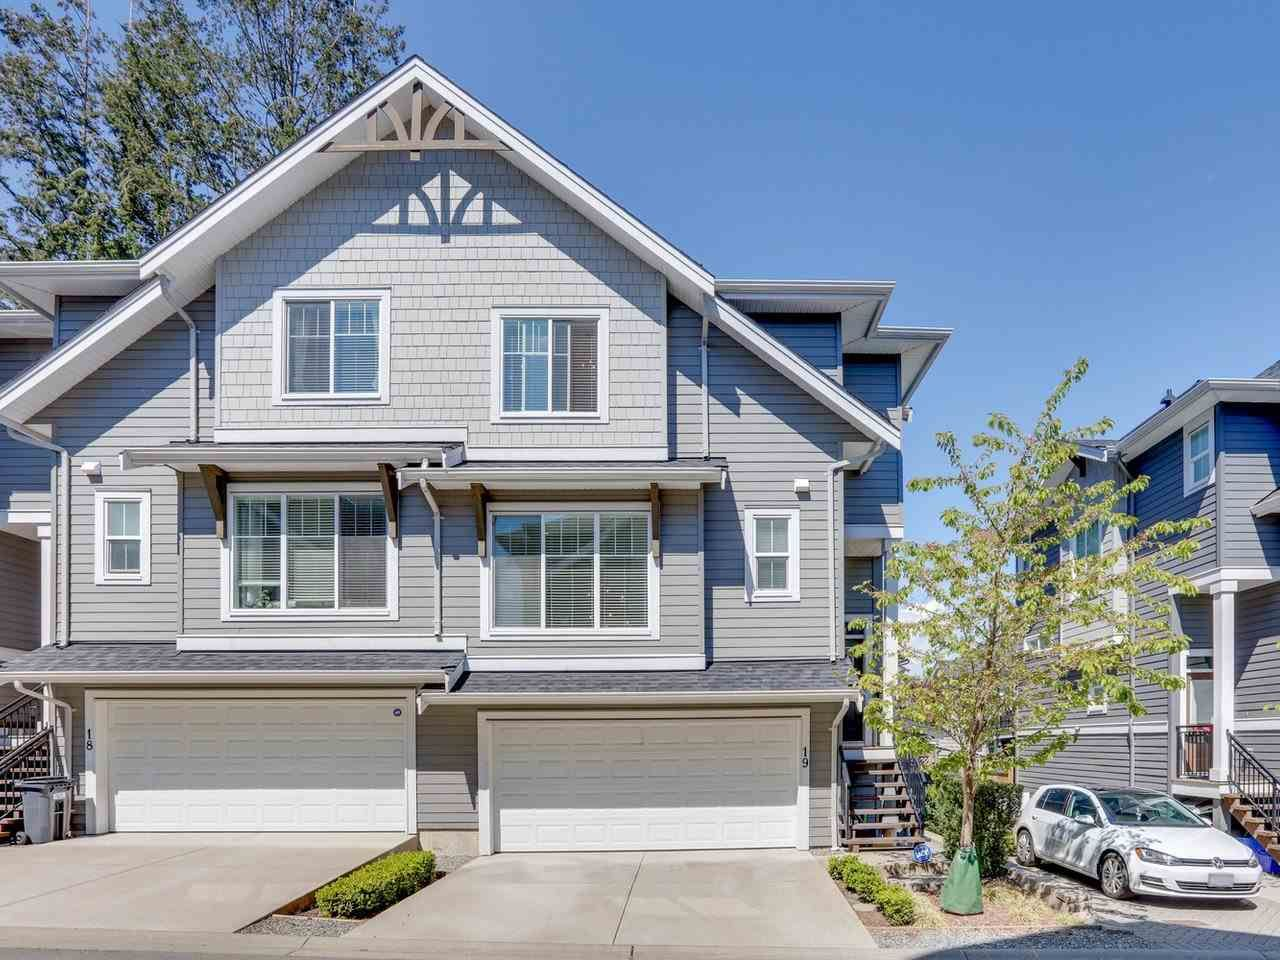 """Main Photo: 19 2855 158 Street in Surrey: Grandview Surrey Townhouse for sale in """"OLIVER"""" (South Surrey White Rock)  : MLS®# R2572225"""